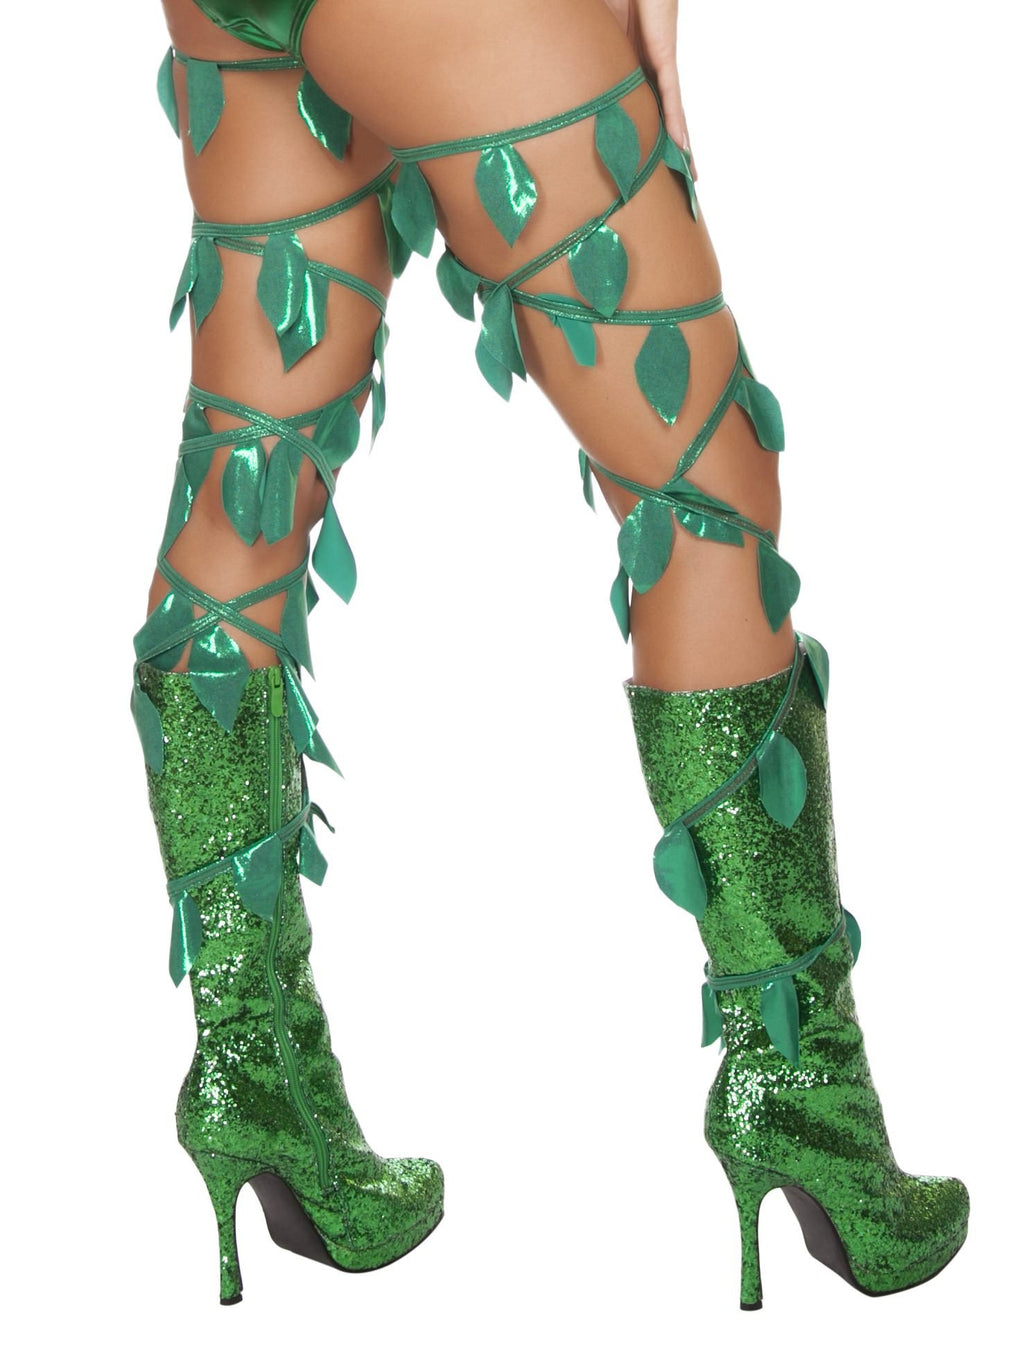 4642 - Green Leaf Thigh Wraps - PlaythingsMiami